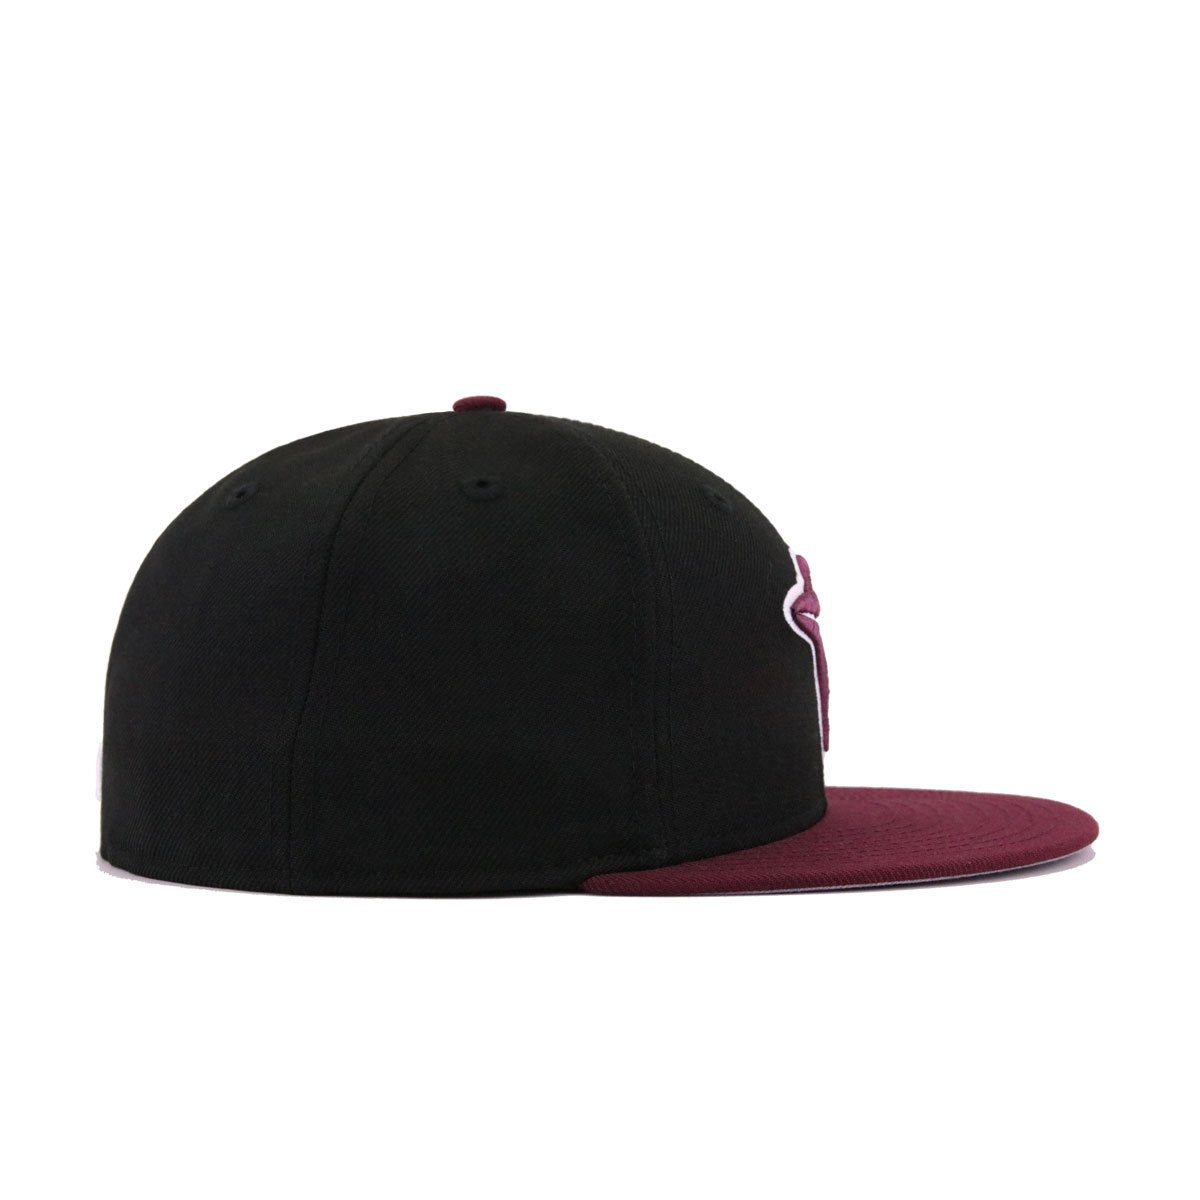 Toronto Blue Jays Black Maroon New Era 59Fifty Fitted